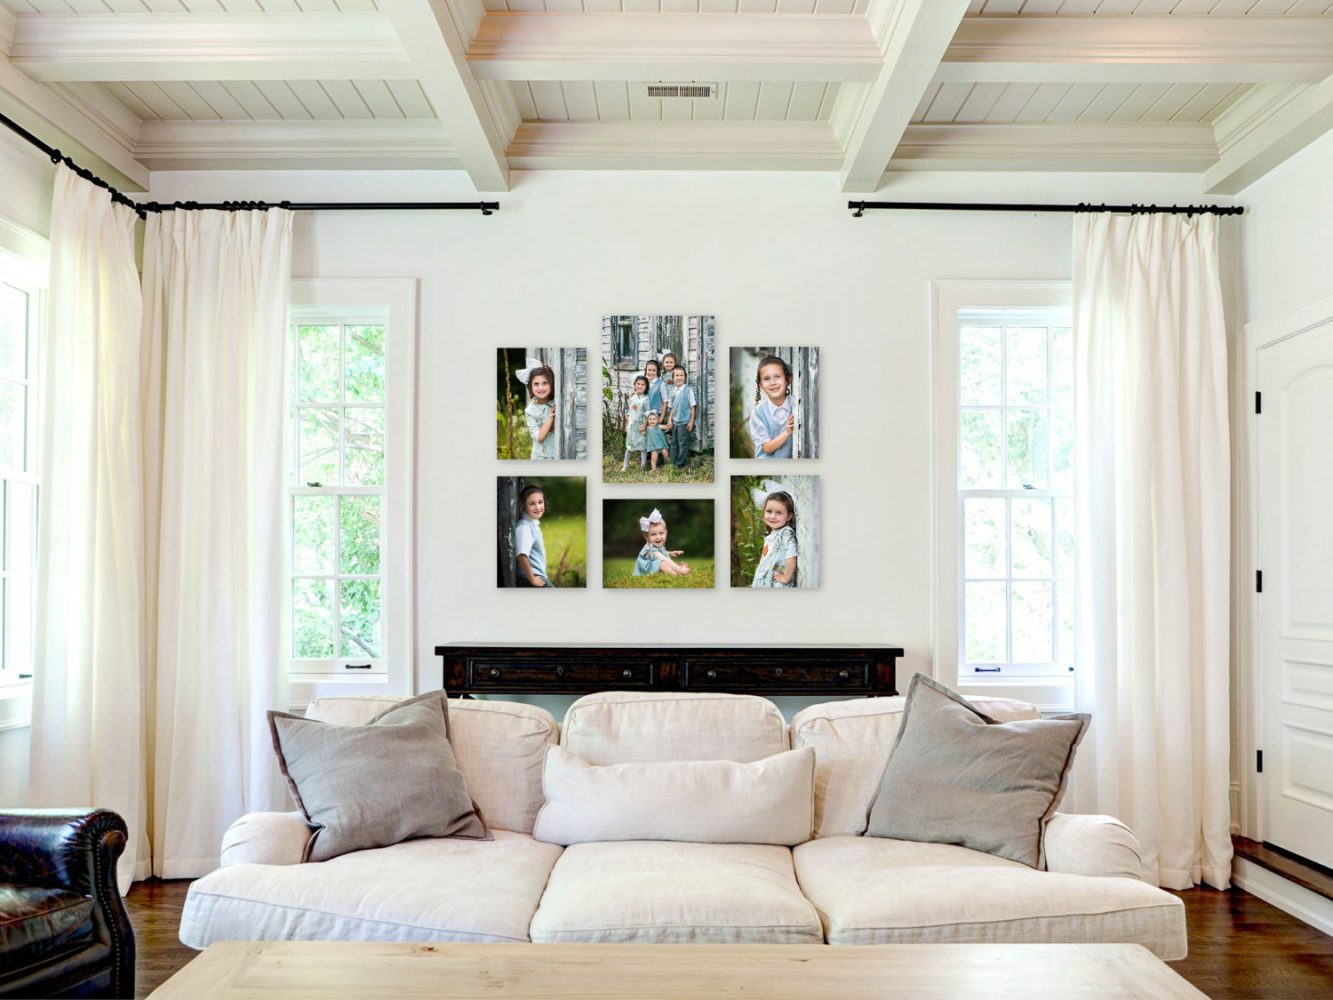 Living room wall art of outdoor family portrait session taken by Picadilly Studios of Boro Park, Brooklyn, NY.